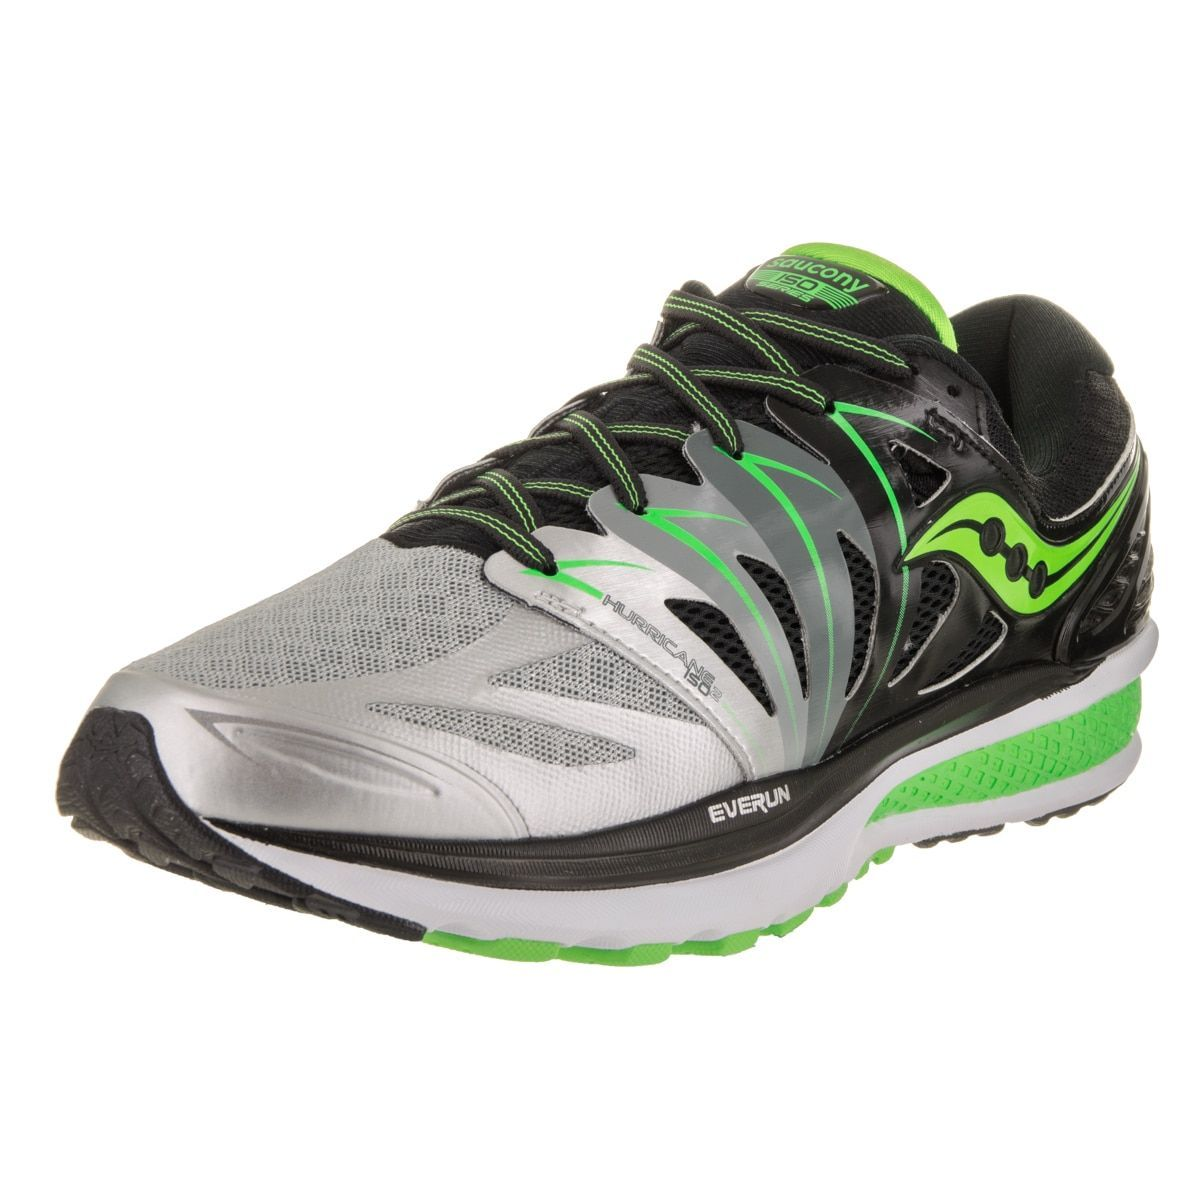 62fbbd0d010f Saucony Men s Hurricane ISO 2 Wide Running Shoe